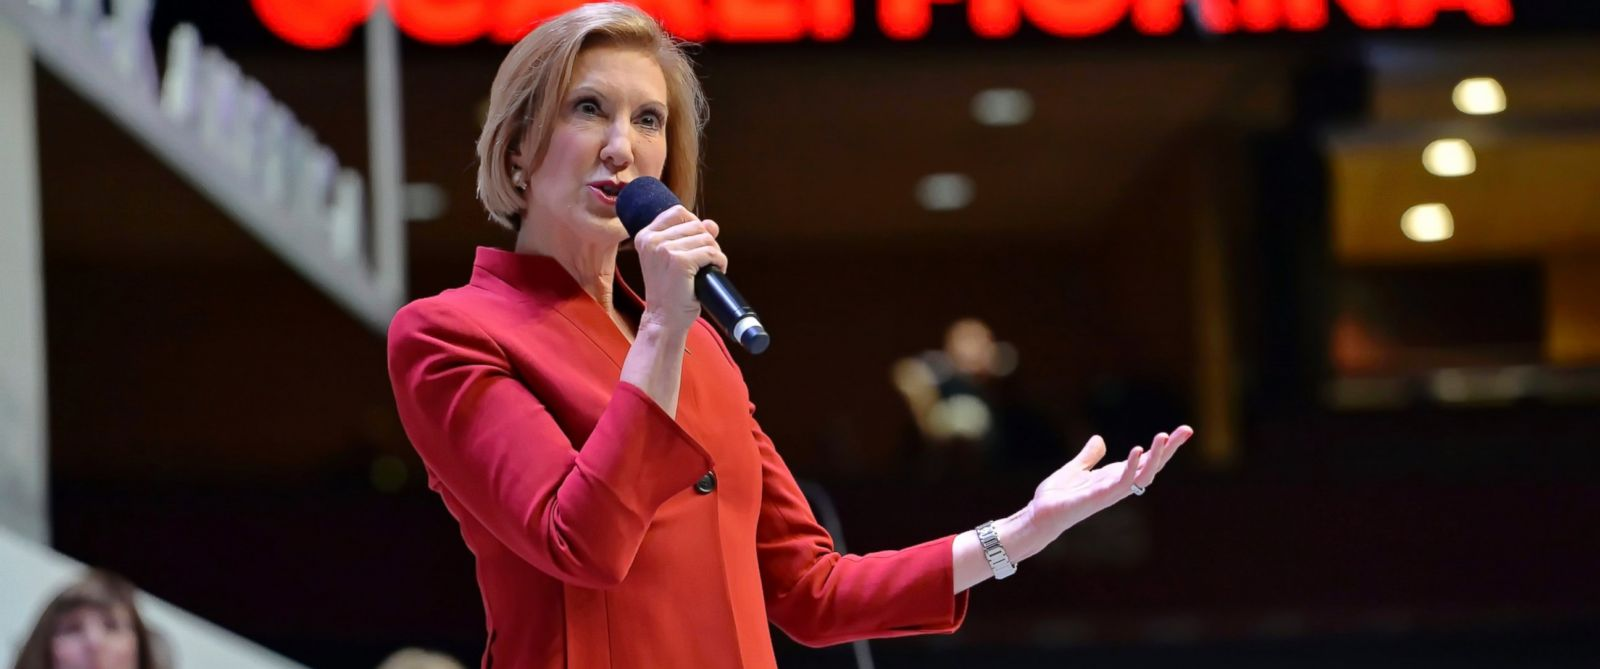 PHOTO: Republican presidential candidate Carly Fiorina speaks at a presidential forum sponsored by Heritage Action at the Bon Secours Wellness Arena, Sept. 18, 2015, in Greenville, S.C.